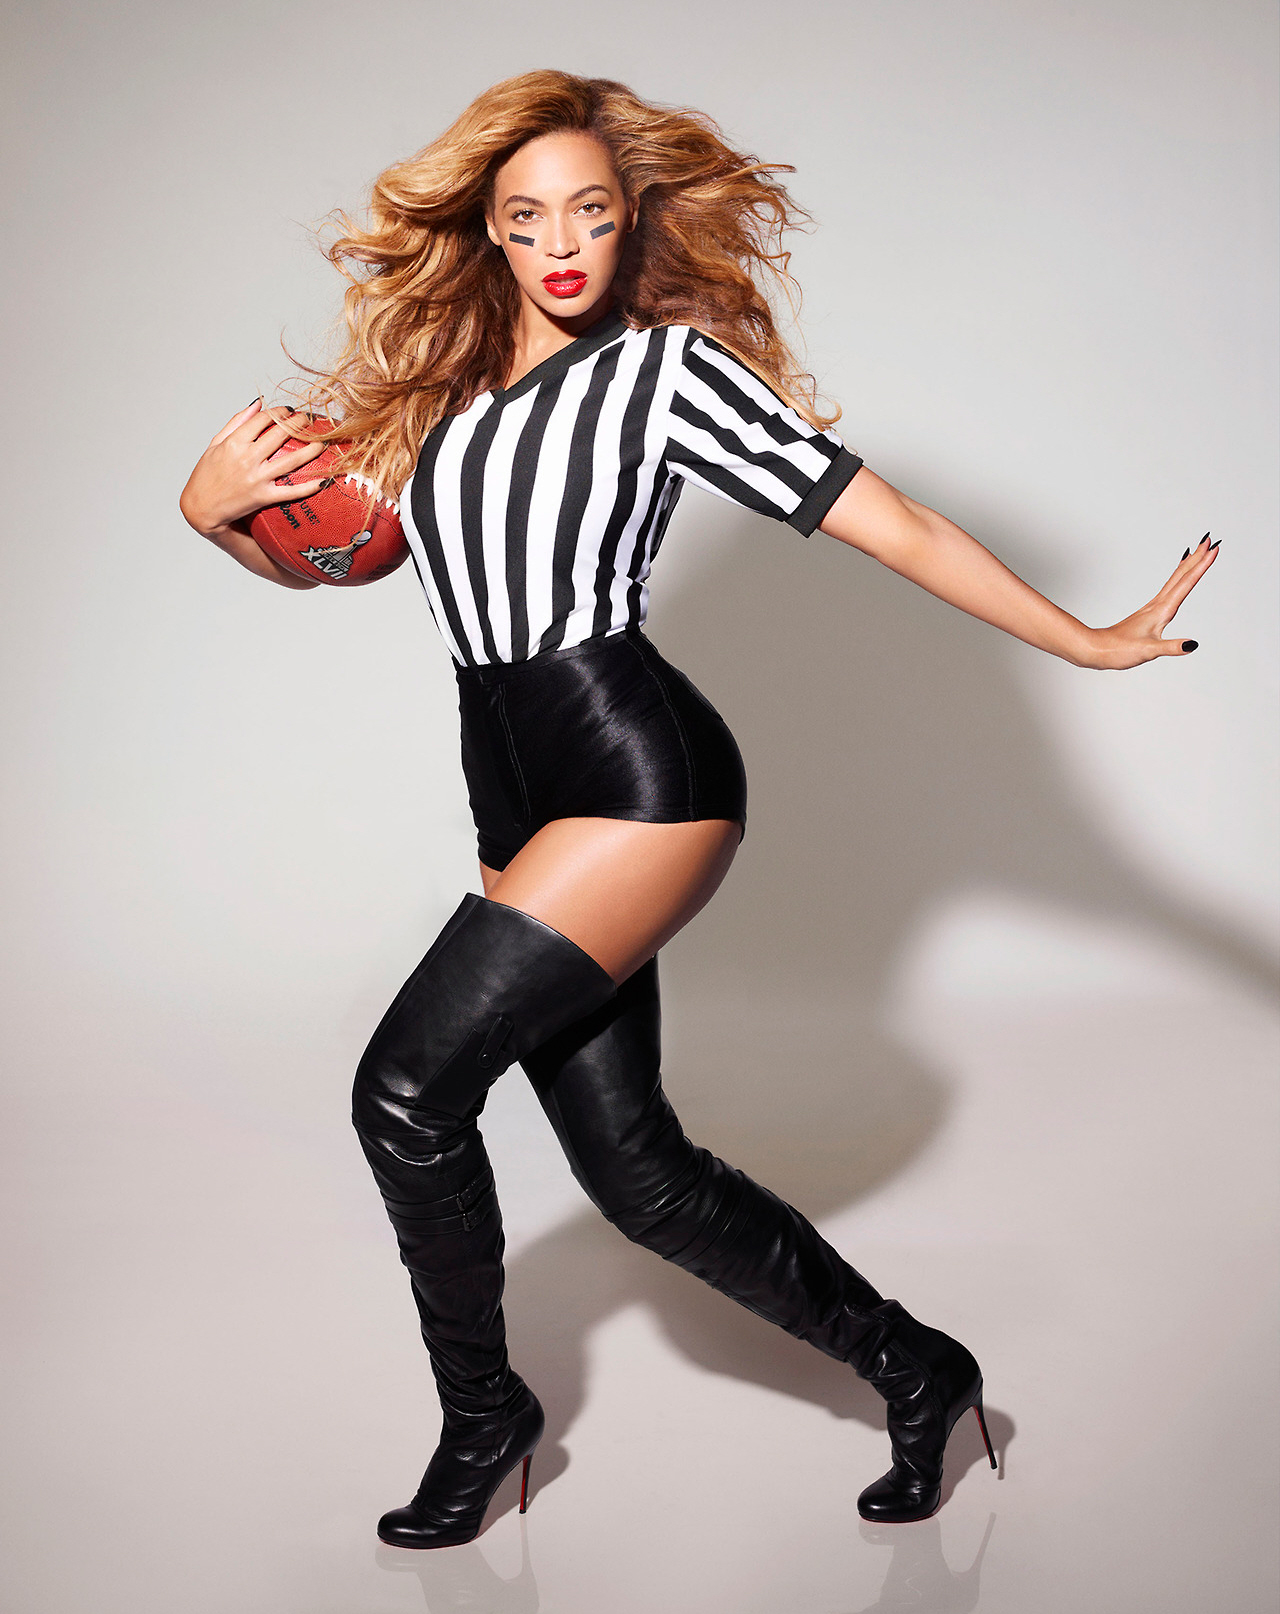 Cele bitchy reports of beyonce s diva attitude are pure - Beyonce diva video ...